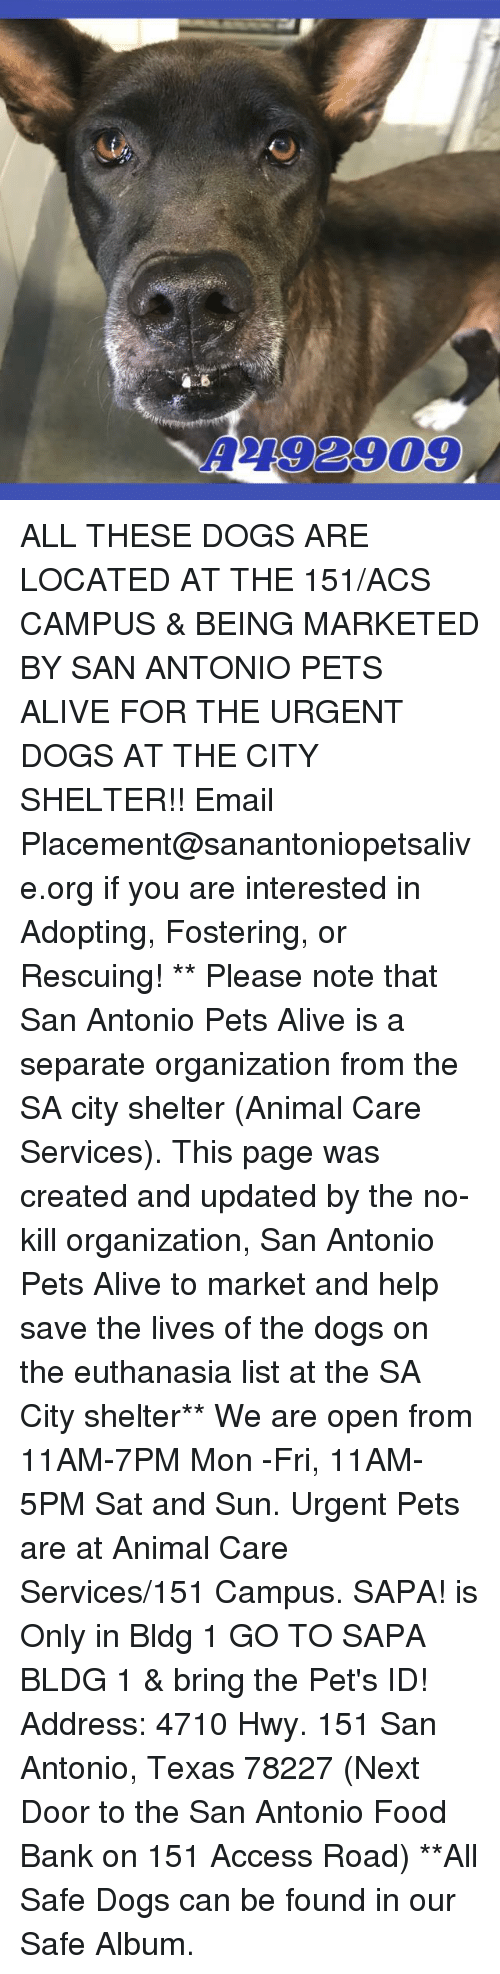 Alive, Dogs, and Food: 2792909 ALL THESE DOGS ARE LOCATED AT THE 151/ACS CAMPUS & BEING MARKETED BY SAN ANTONIO PETS ALIVE FOR THE URGENT DOGS AT THE CITY SHELTER!!  Email Placement@sanantoniopetsalive.org if you are interested in Adopting, Fostering, or Rescuing!                                                                                                                                                                                                                                                                                                                                                             ** Please note that San Antonio Pets Alive is a separate organization from the SA city shelter (Animal Care Services). This page was created and updated by the no-kill organization, San Antonio Pets Alive to market and help save the lives of the dogs on the euthanasia list at the SA City shelter**  We are open from 11AM-7PM Mon -Fri, 11AM-5PM Sat and Sun. Urgent Pets are at Animal Care Services/151 Campus. SAPA! is Only in Bldg 1 GO TO SAPA BLDG 1 & bring the Pet's ID! Address: 4710 Hwy. 151 San Antonio, Texas 78227 (Next Door to the San Antonio Food Bank on 151 Access Road) **All Safe Dogs can be found in our Safe Album.